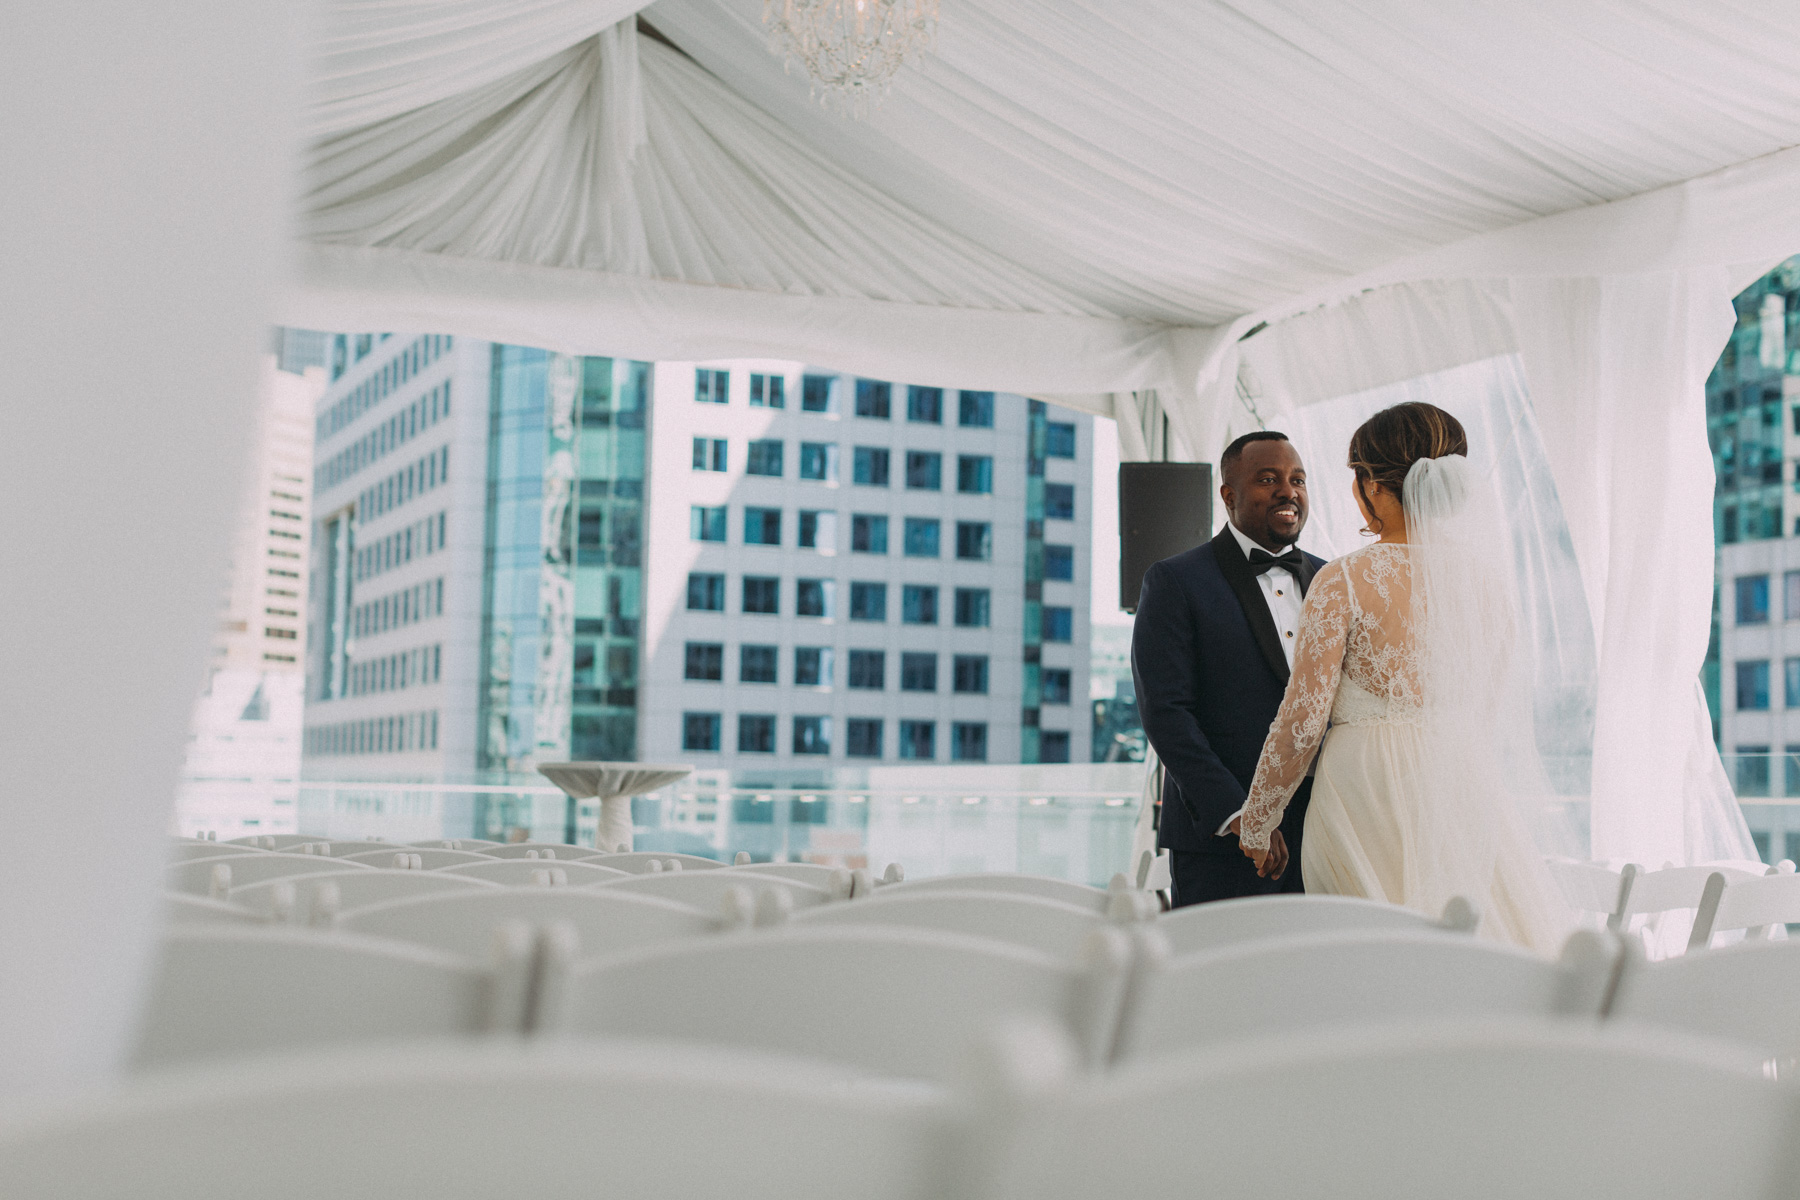 Malaparte-wedding-photography-Toronto-by-Sam-Wong-of-Artanis-Collective-Mary-Anne-Bourne_017.jpg